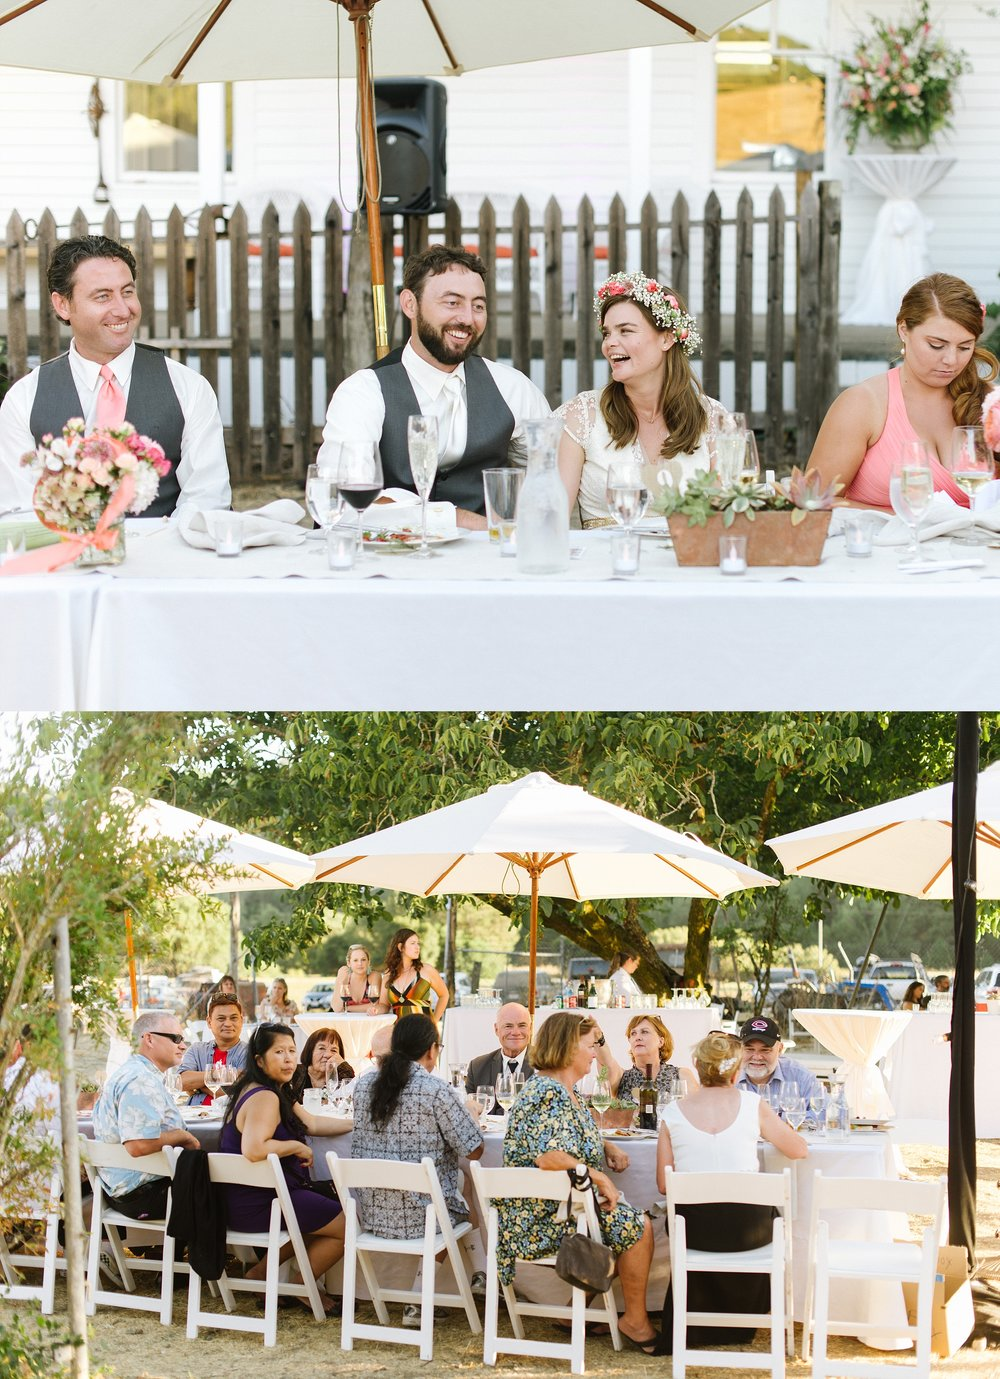 fairfax_ranch_wedding_chelsea_dier_photography_0059.jpg